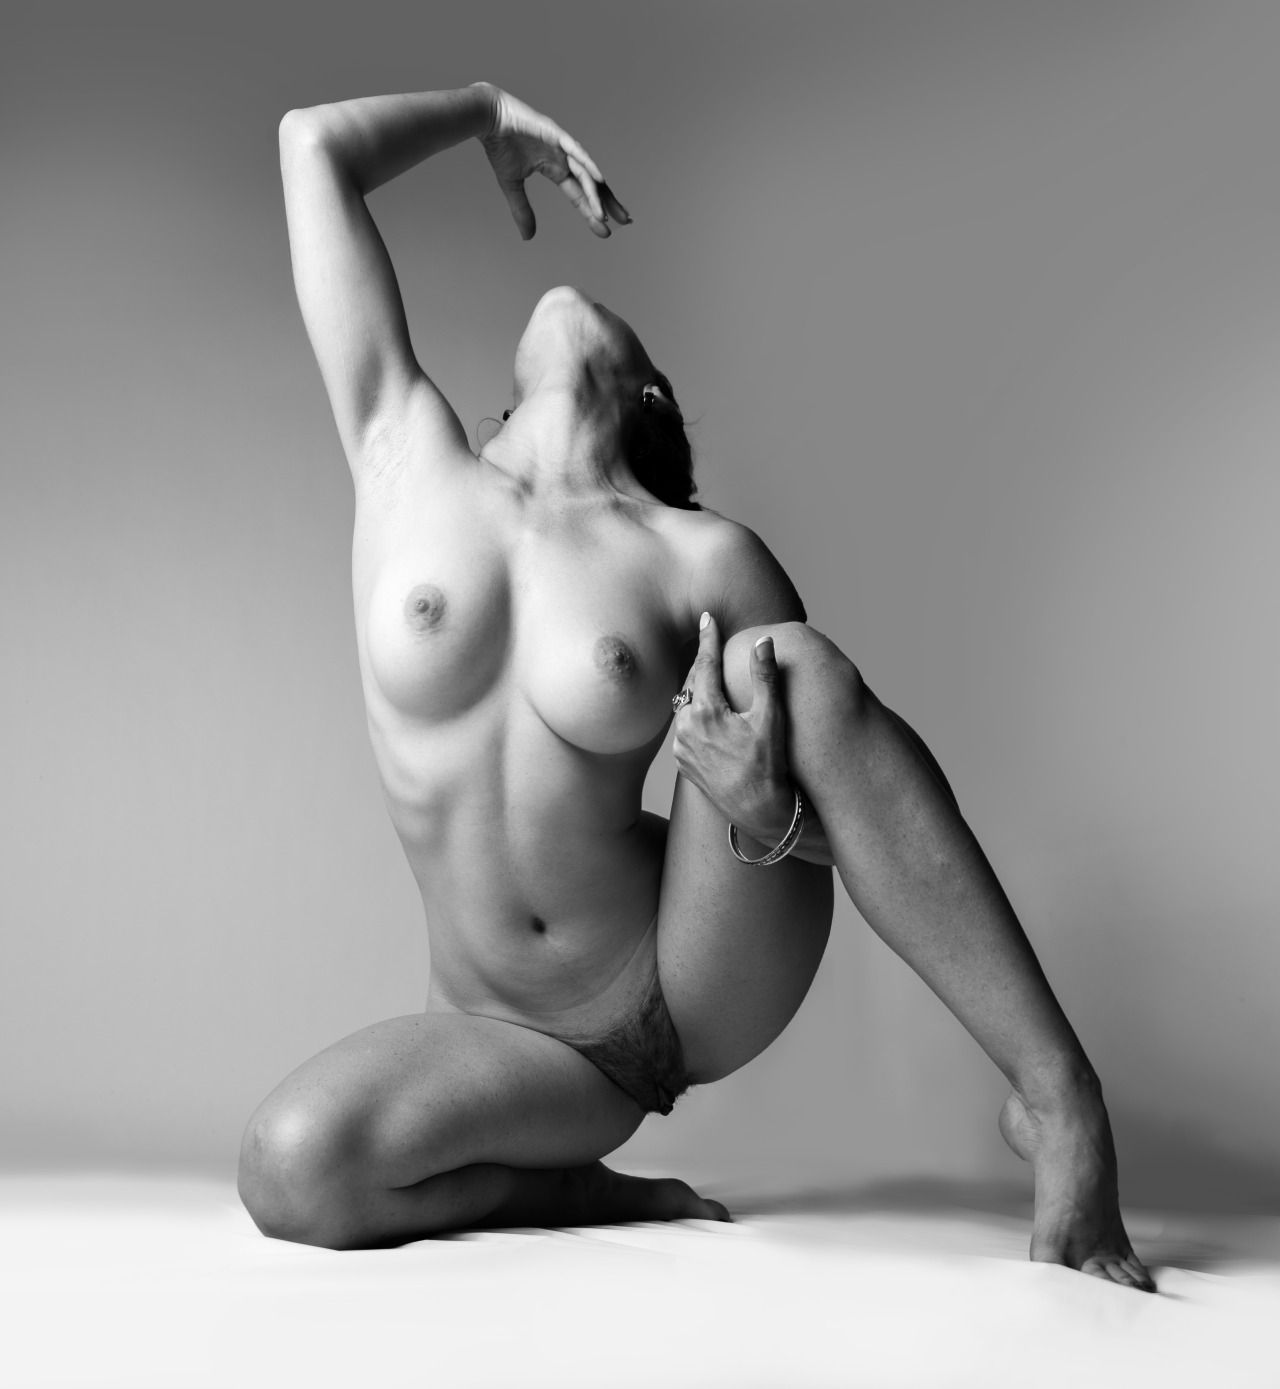 Just women naked pose